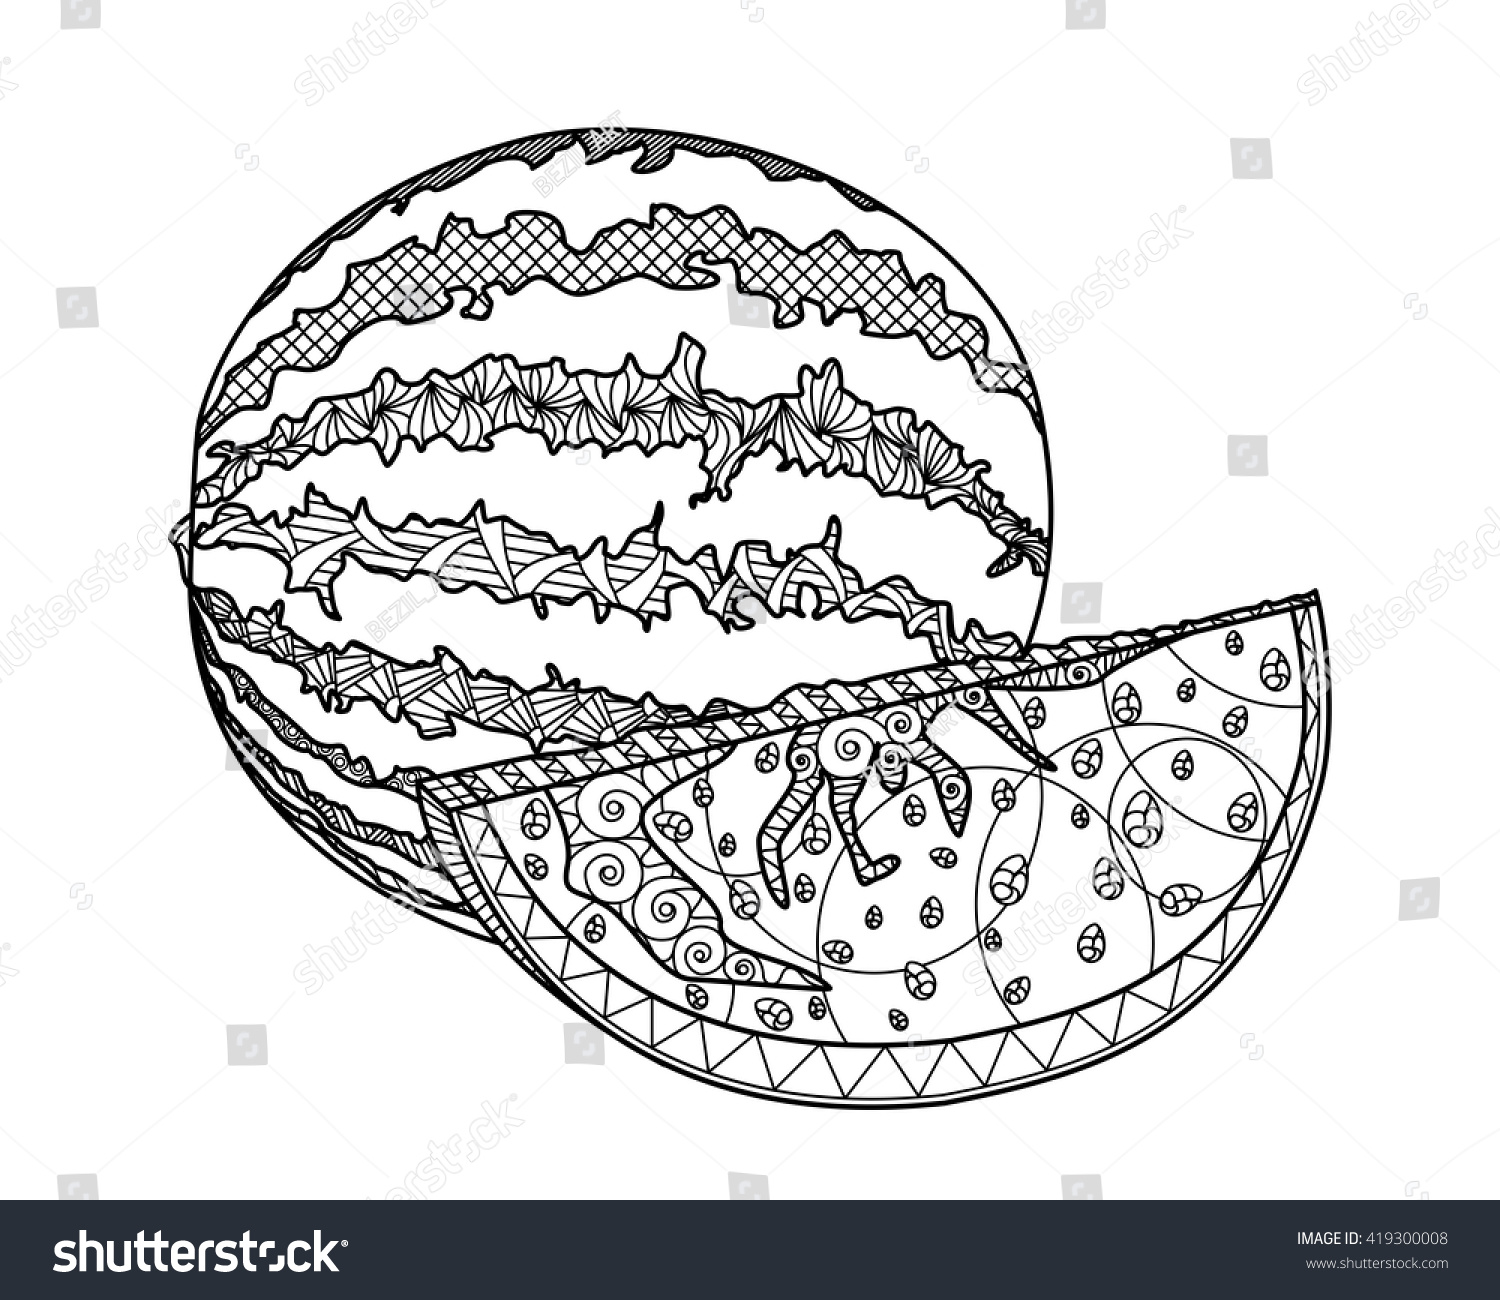 Coloring Pages Watermelon Large Piece For Children And Adults The Of